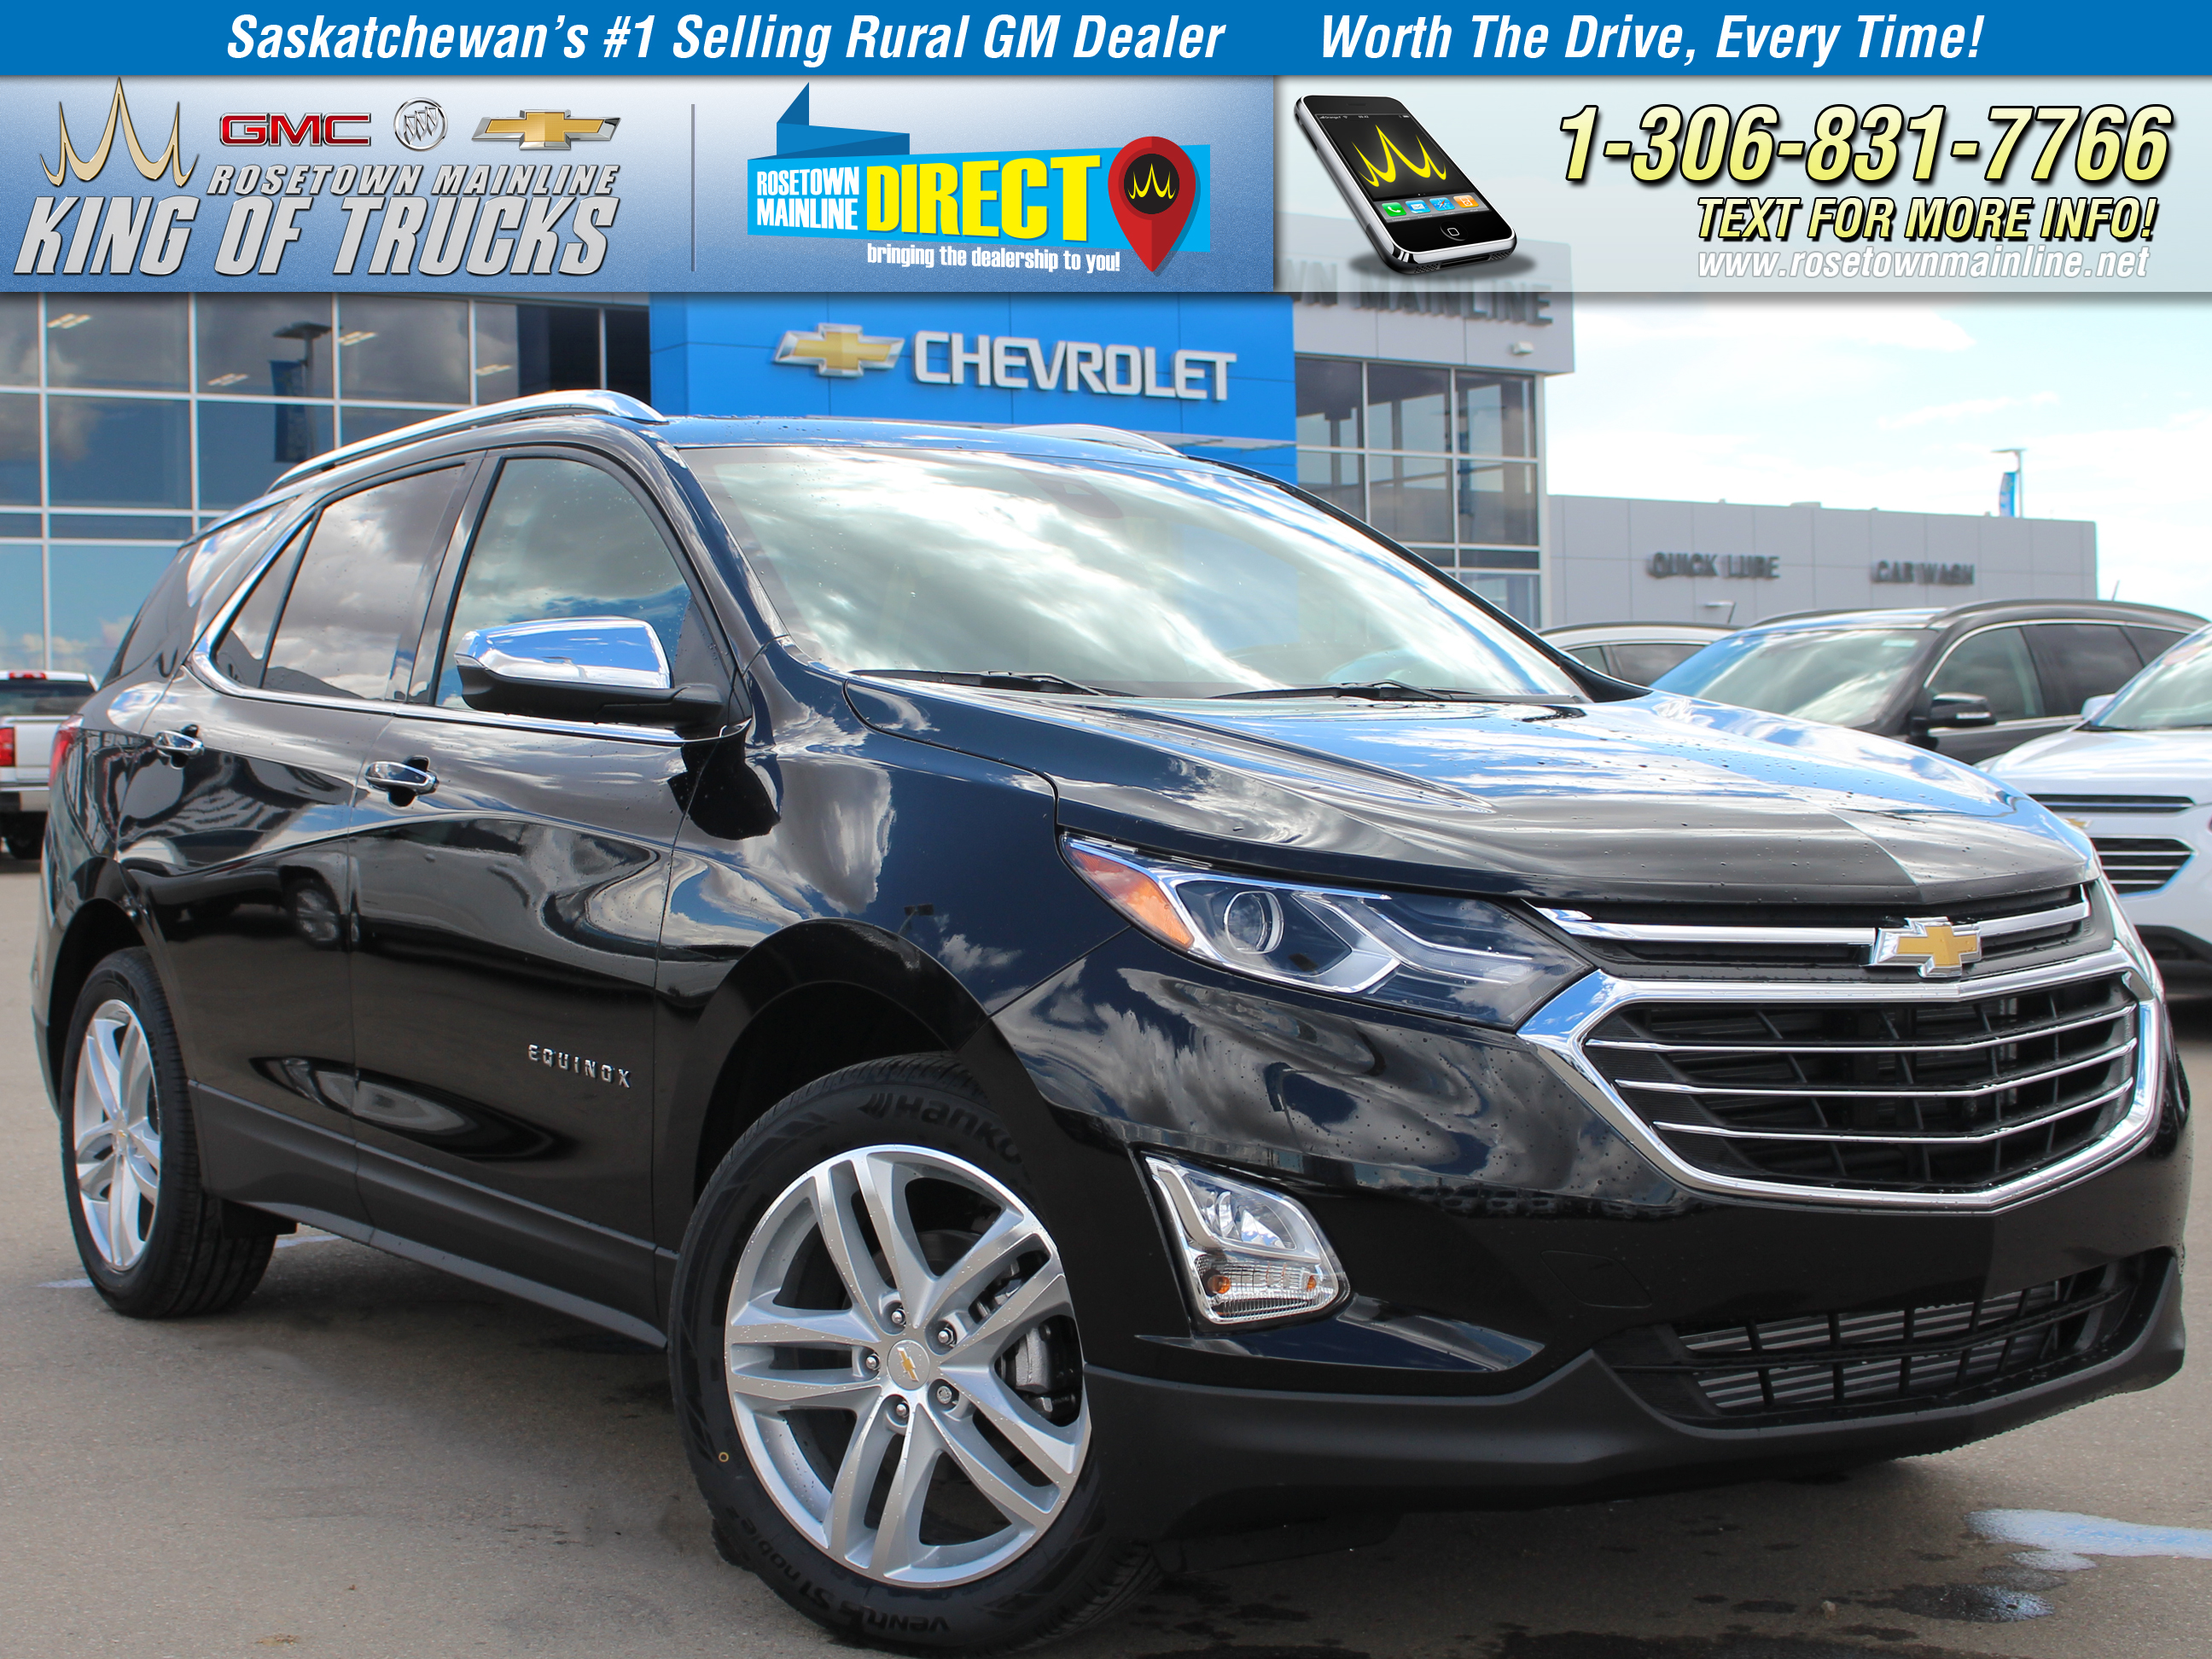 new 2018 chevrolet equinox premier suv in rosetown 55629 rosetown mainline. Black Bedroom Furniture Sets. Home Design Ideas